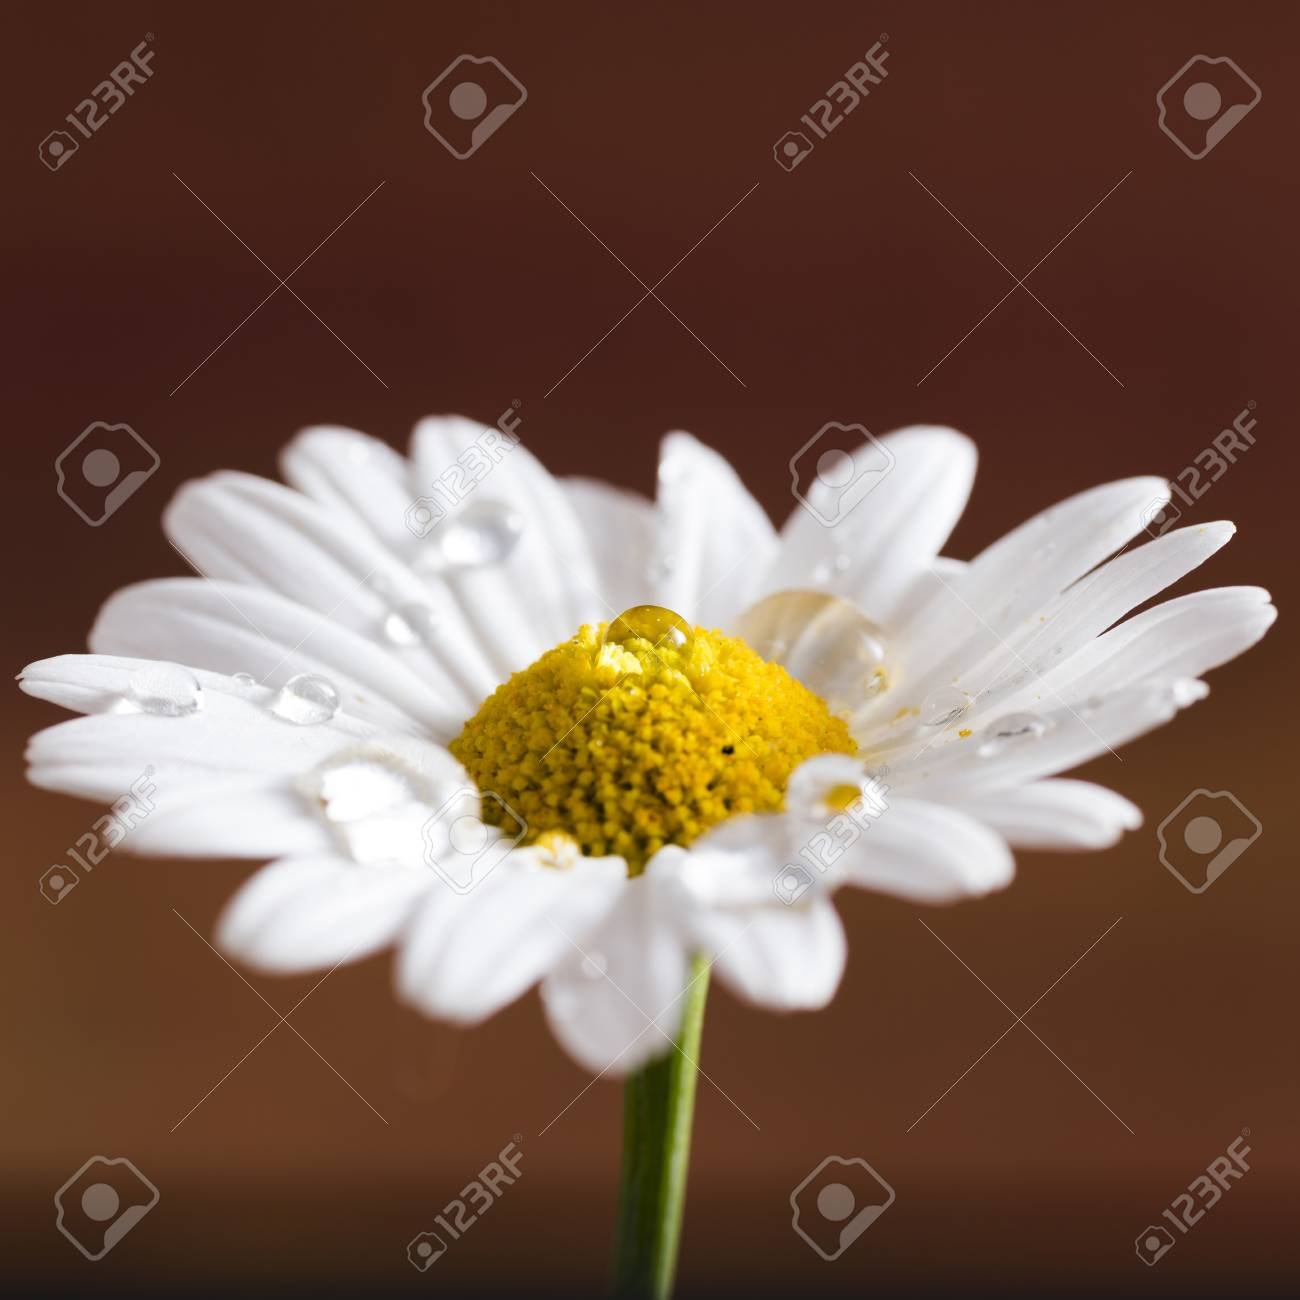 Closeup Of A Daisy Flower With Dew Drops On Colorful Background